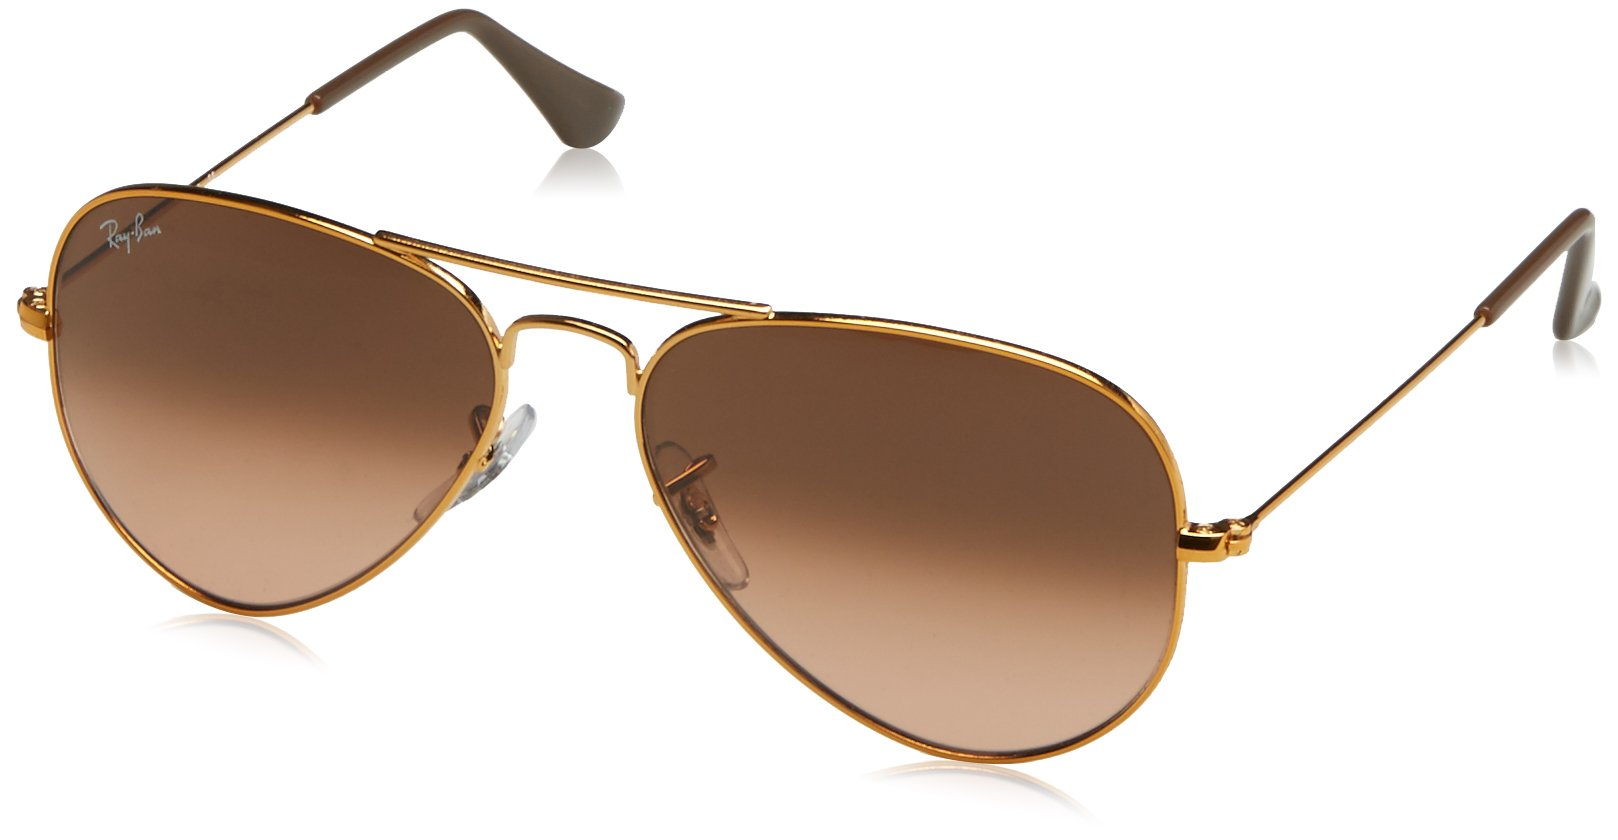 RAY-BAN RB3025 Aviator Large Metal Sunglasses, Shiny Light Bronze/Pink Gradient Brown, 55 mm by RAY-BAN